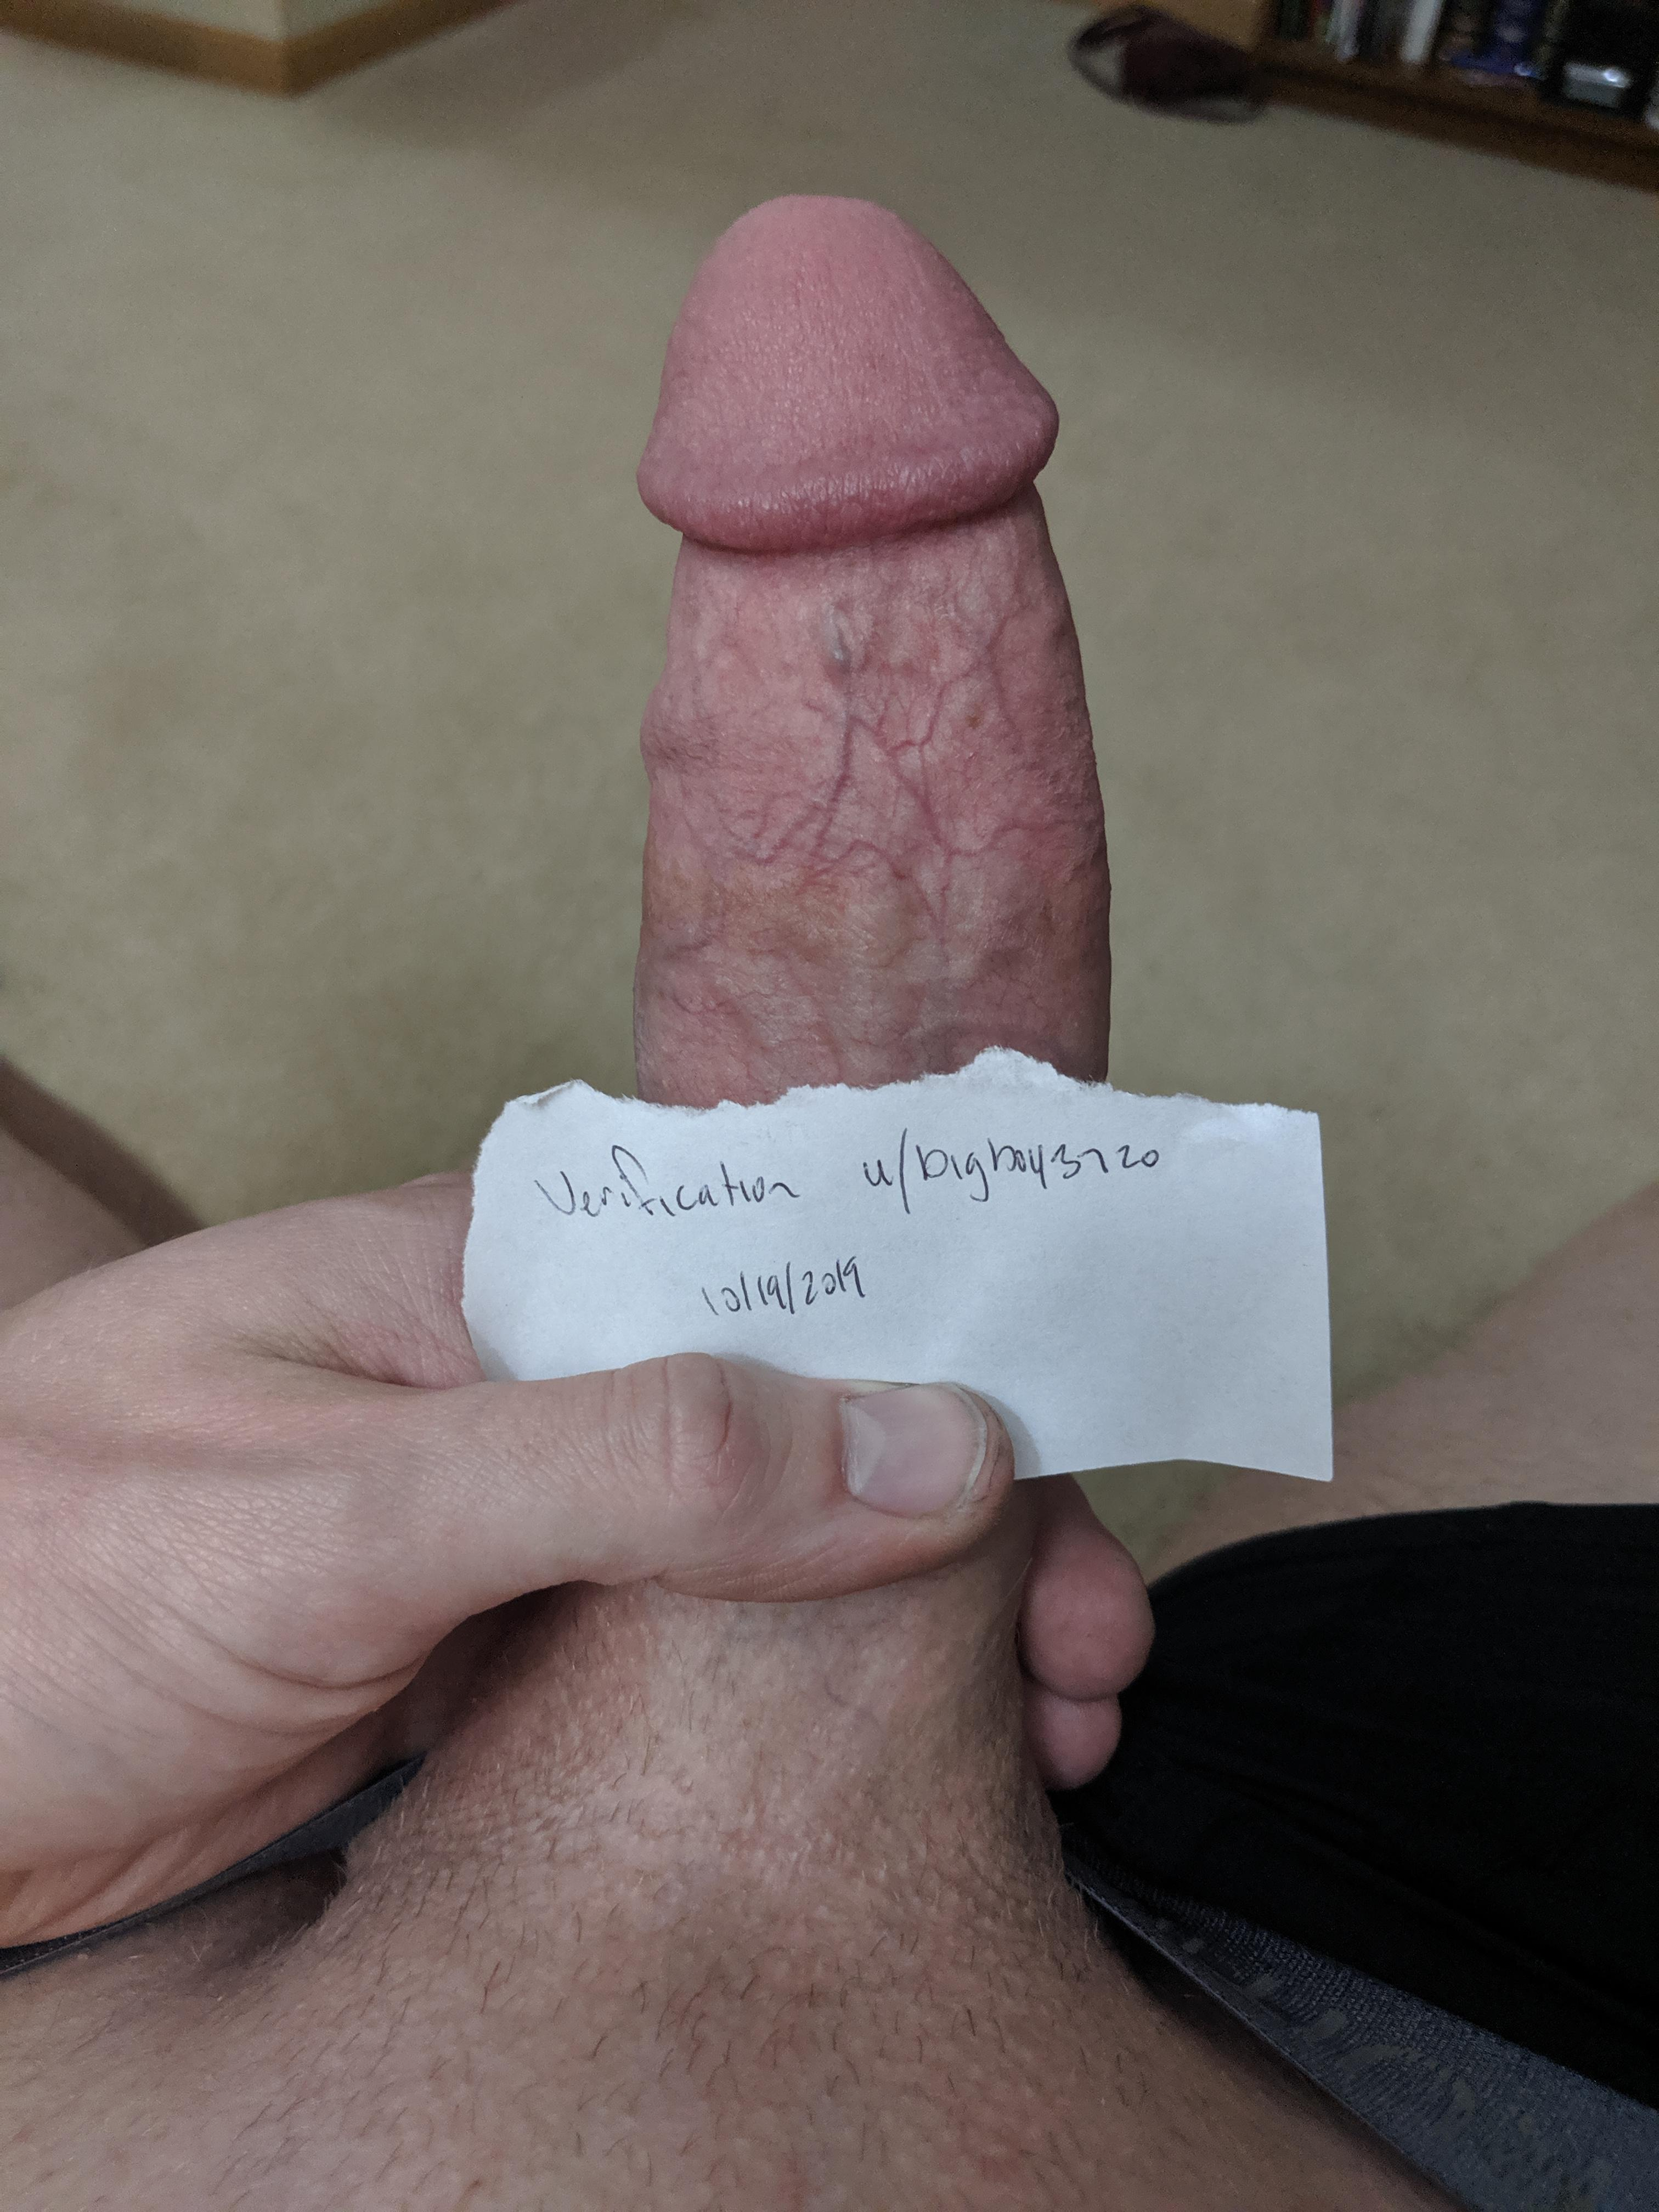 Pictures of real dicks